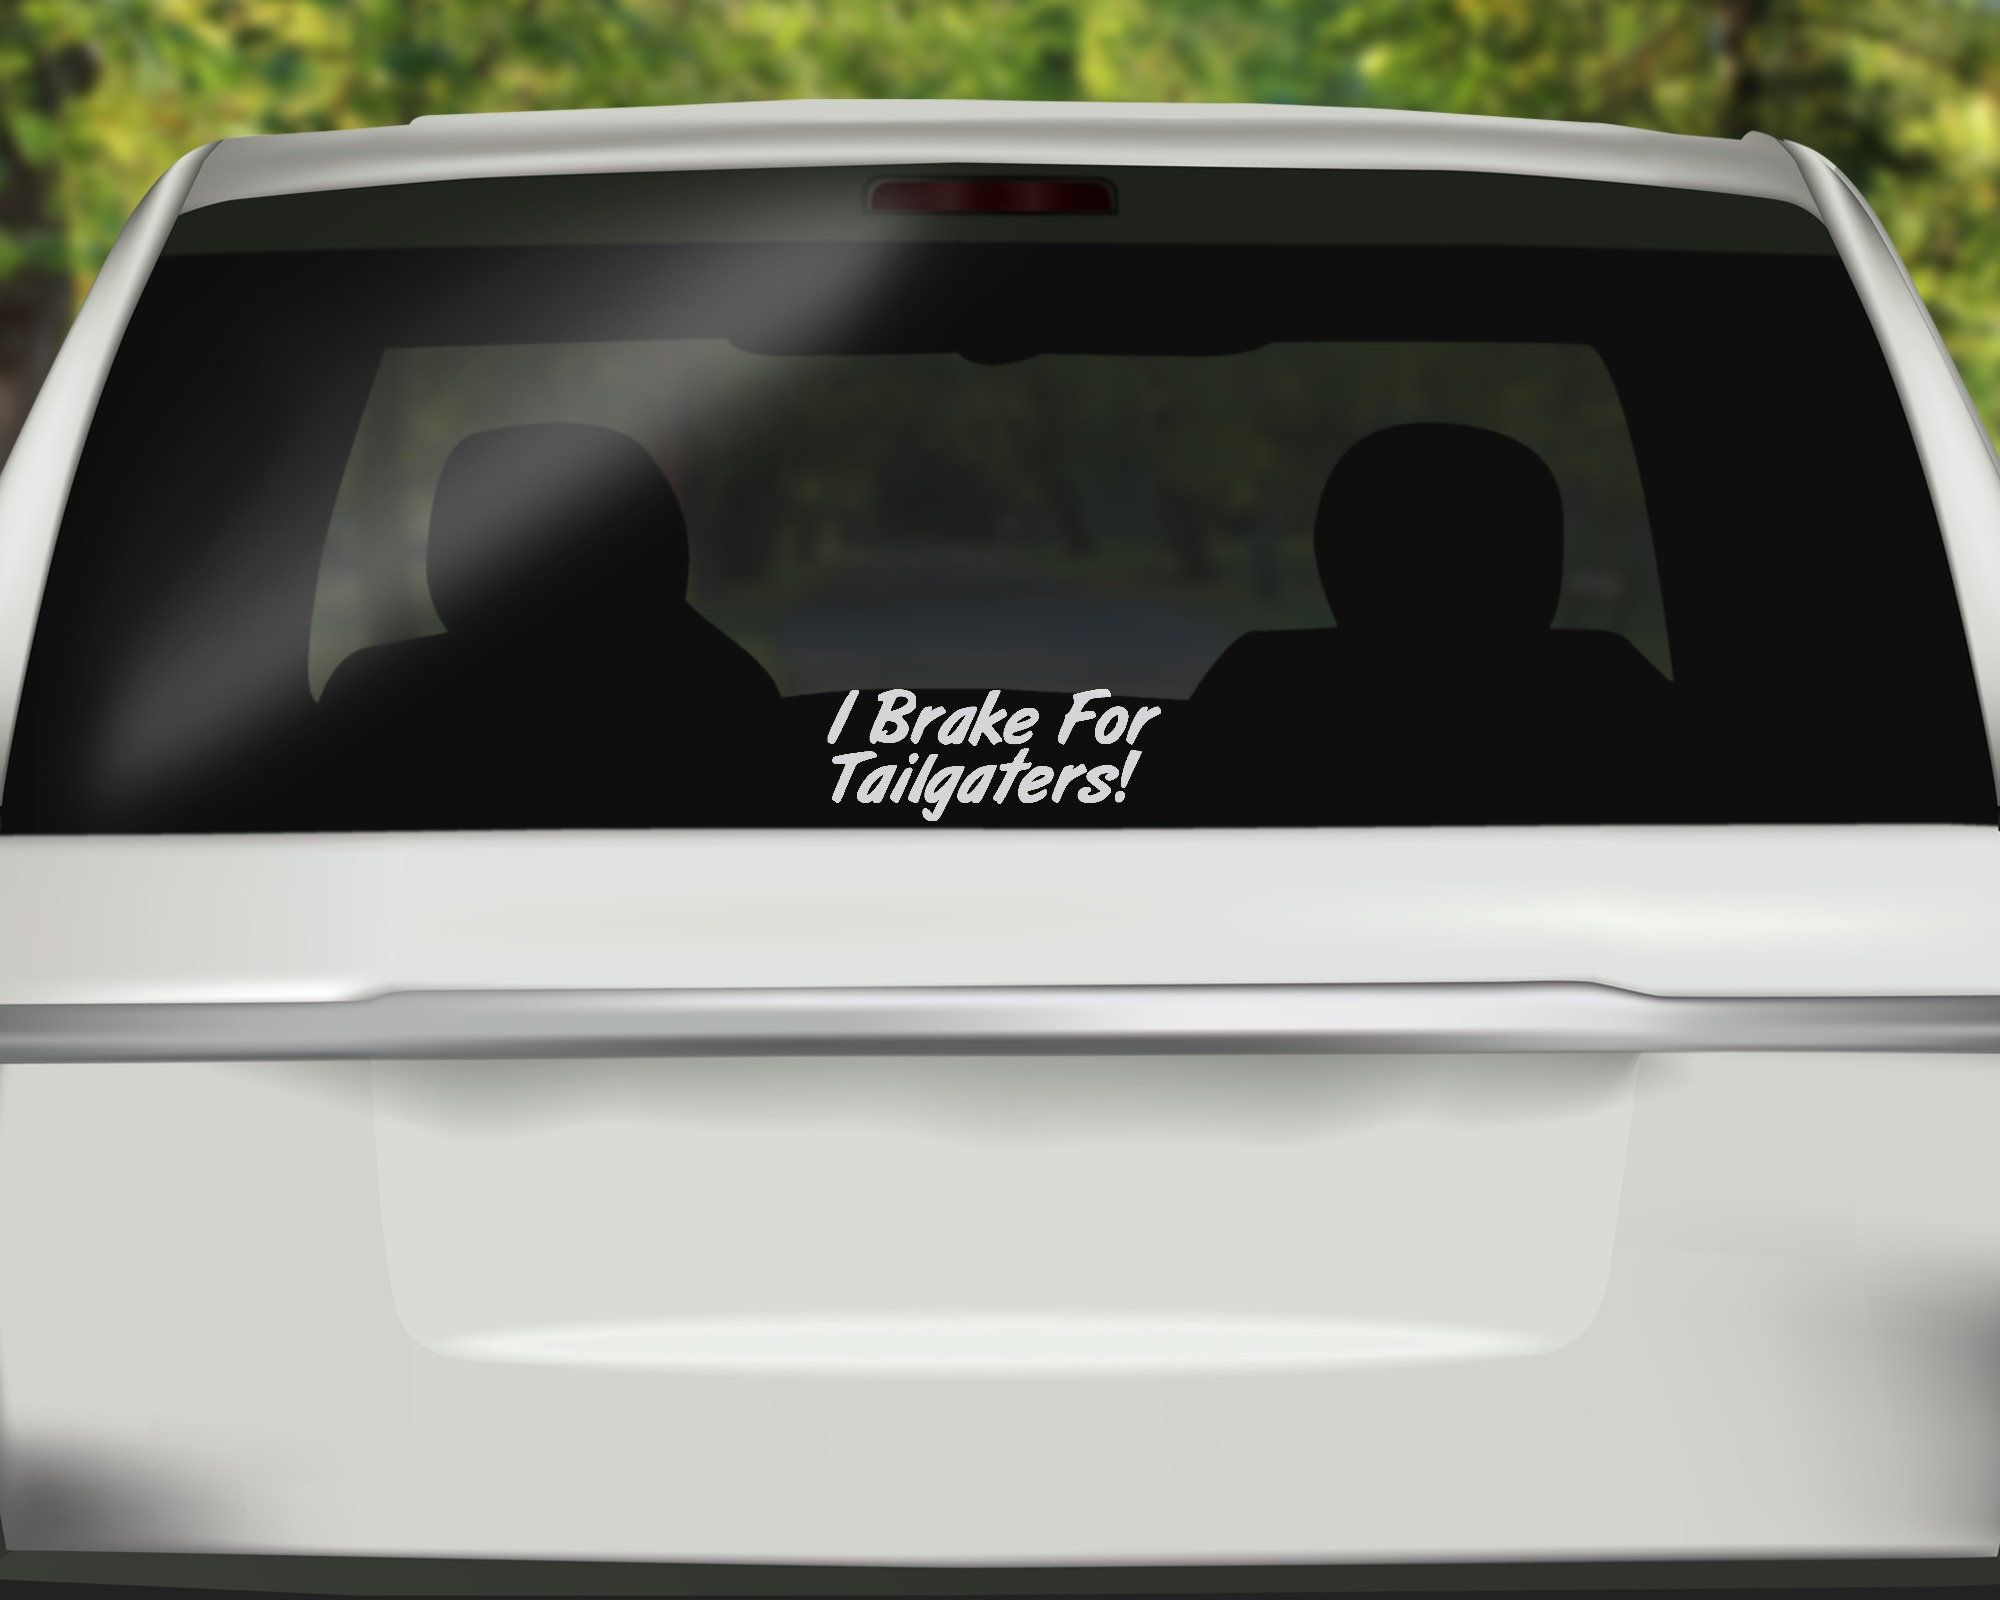 I Brake For Tailgaters Decal Road Rage Decal Driving Decal Sassy Sticker Funny Decal Car Sticker Vi Funny Car Decals Car Decals Vinyl Hunting Decal [ 1600 x 2000 Pixel ]